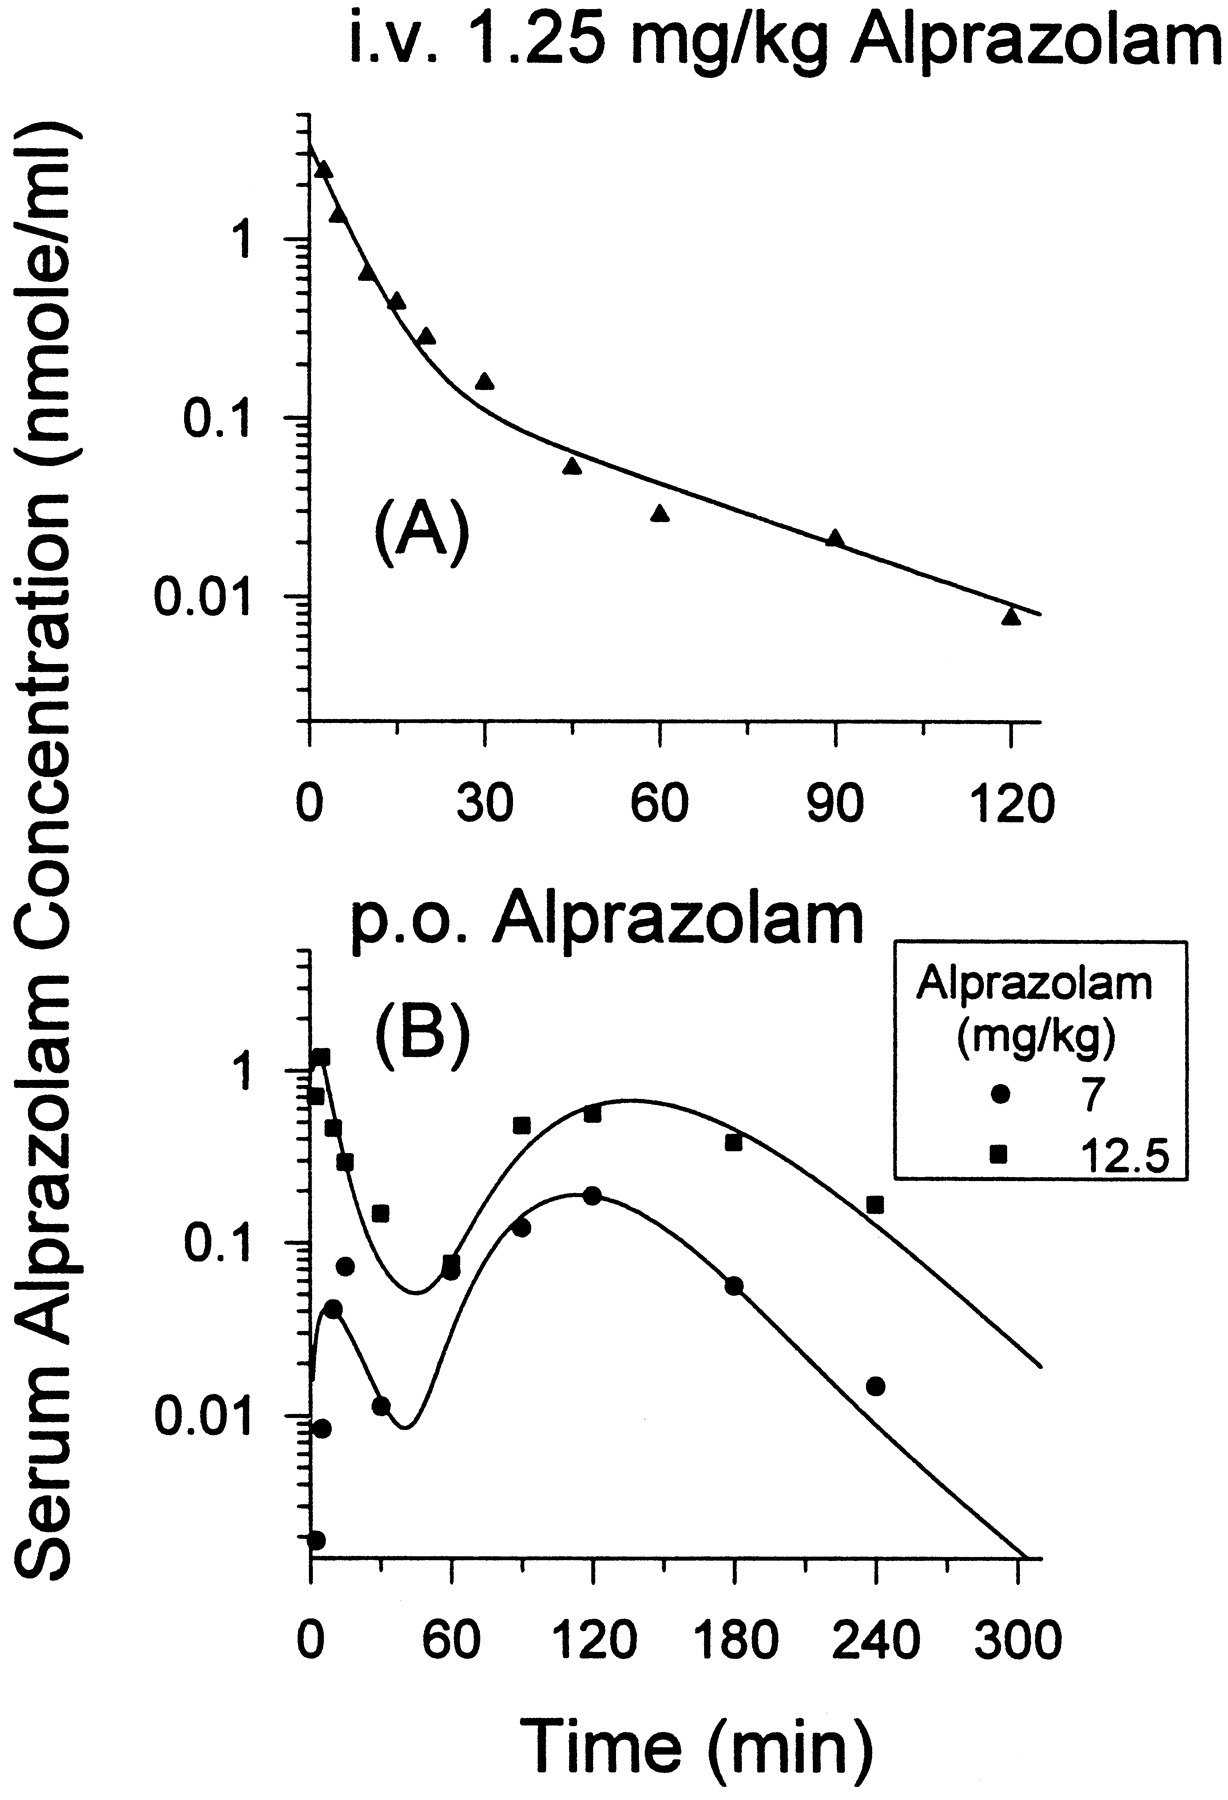 A Double Peak Phenomenon In The Pharmacokinetics Of Alprazolam After